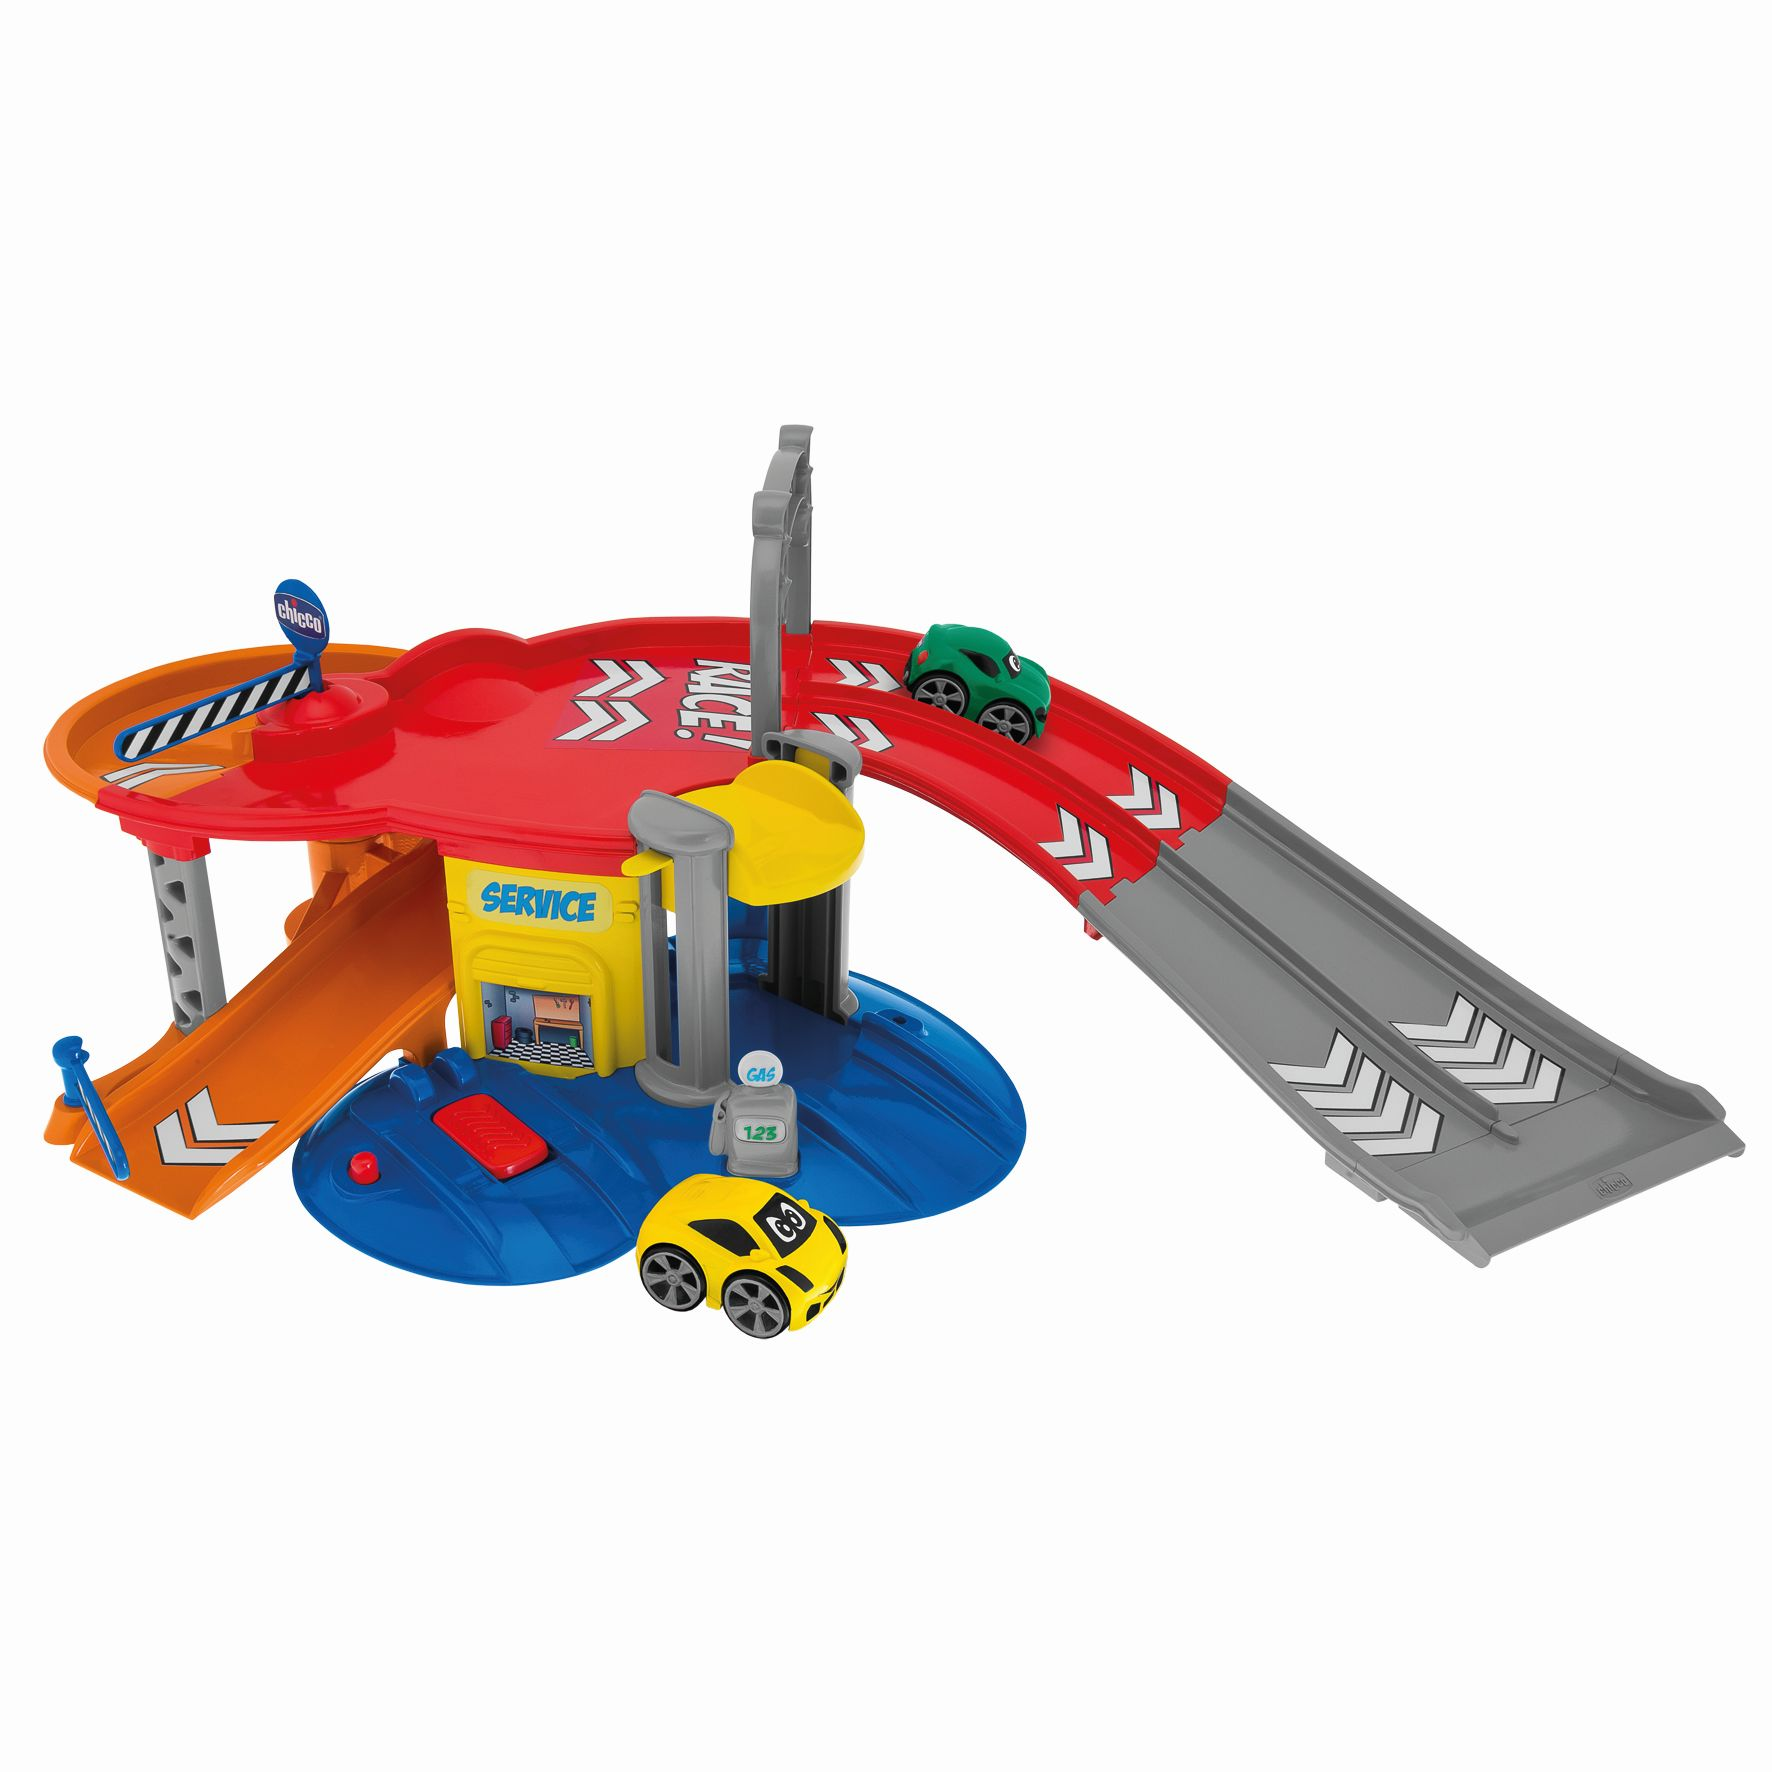 Chicco Garage Toy